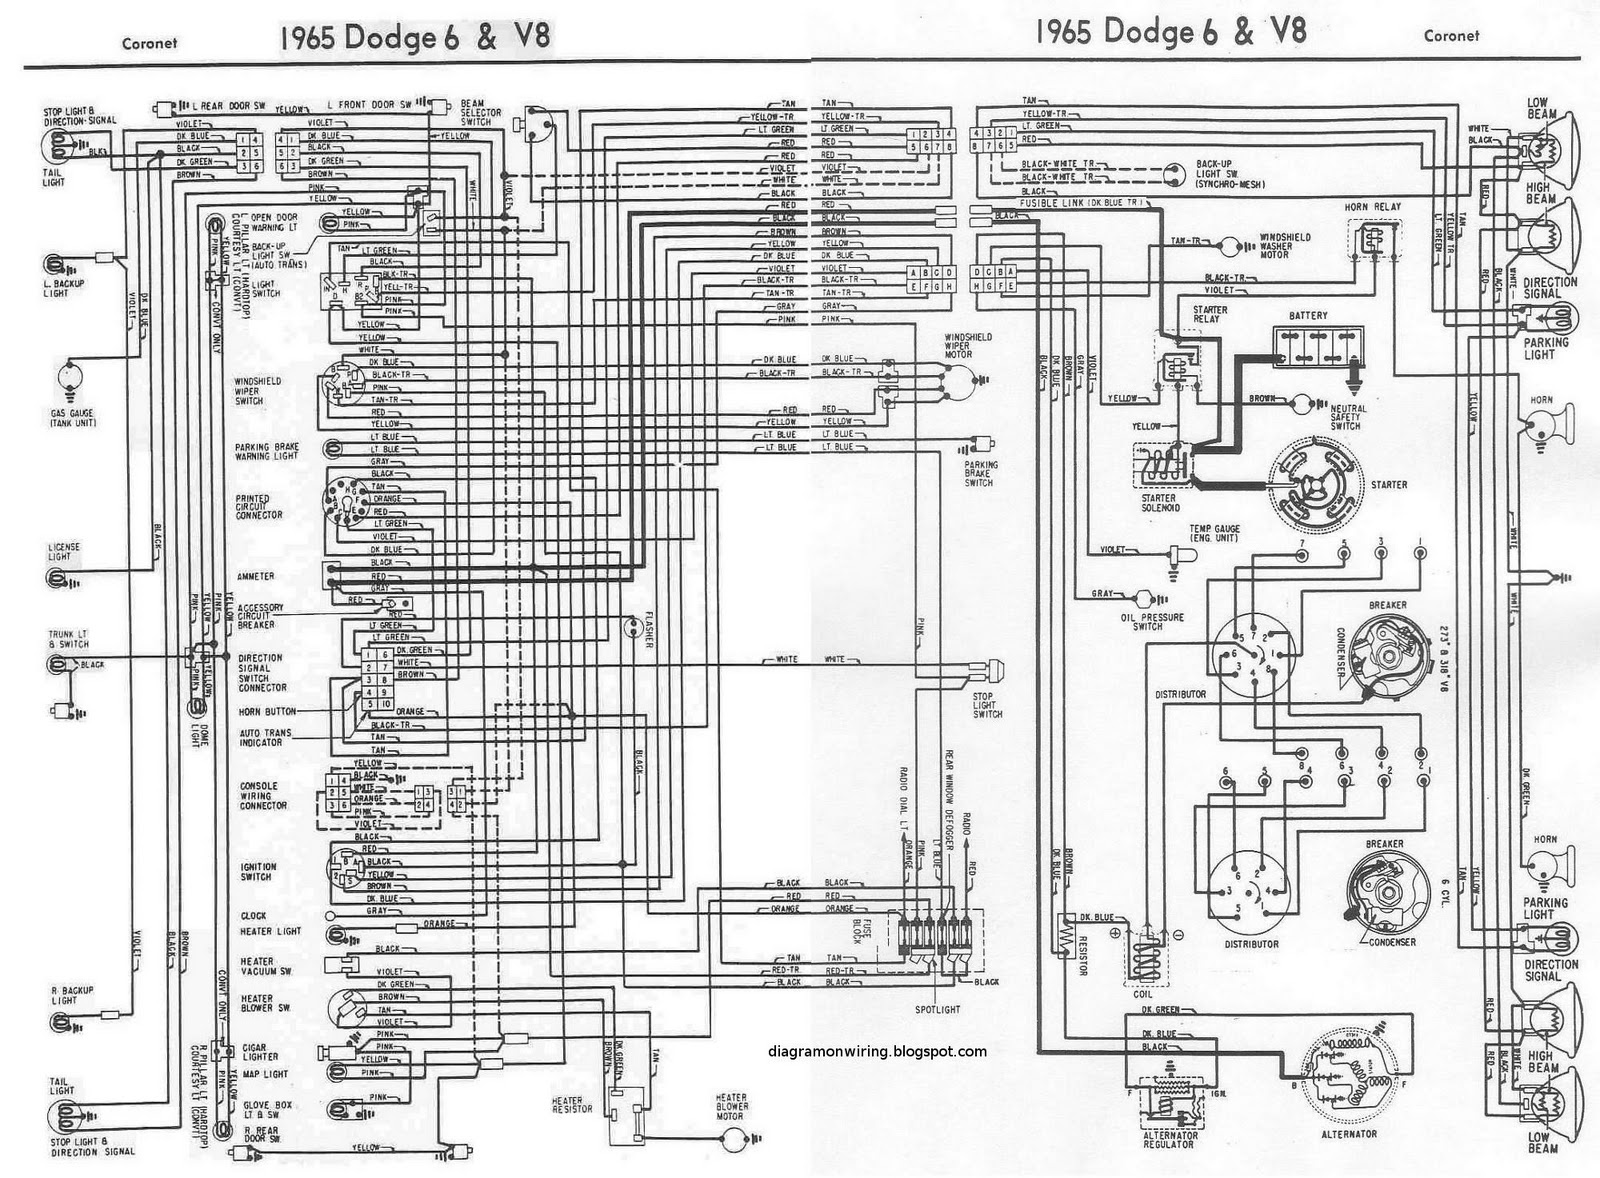 medium resolution of dodge demon wiring diagrams library of wiring diagrams u ti com jpg 1600x1178 plymouth duster headlight